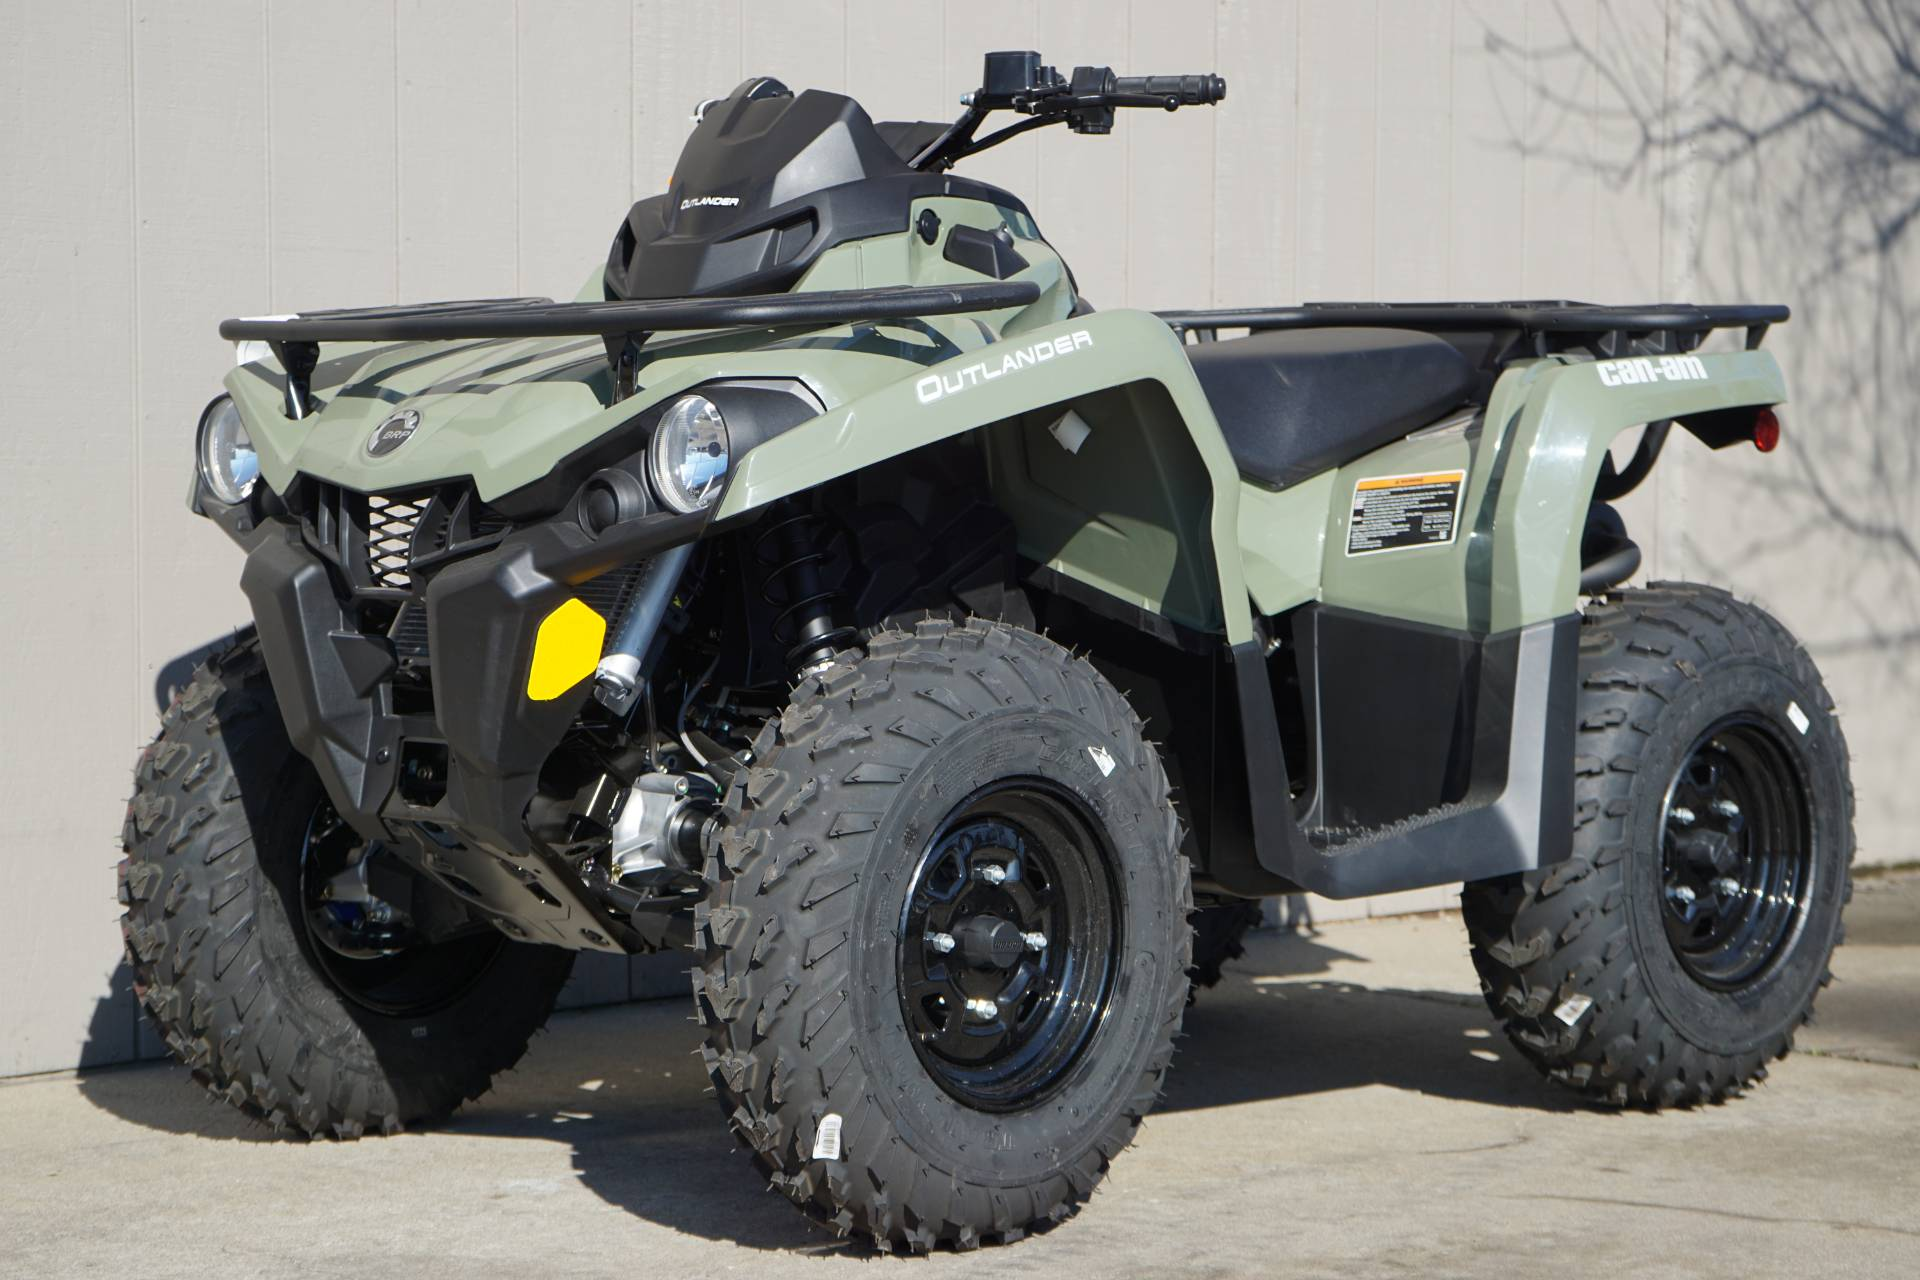 2019 Can-Am Outlander 450 for sale 151026